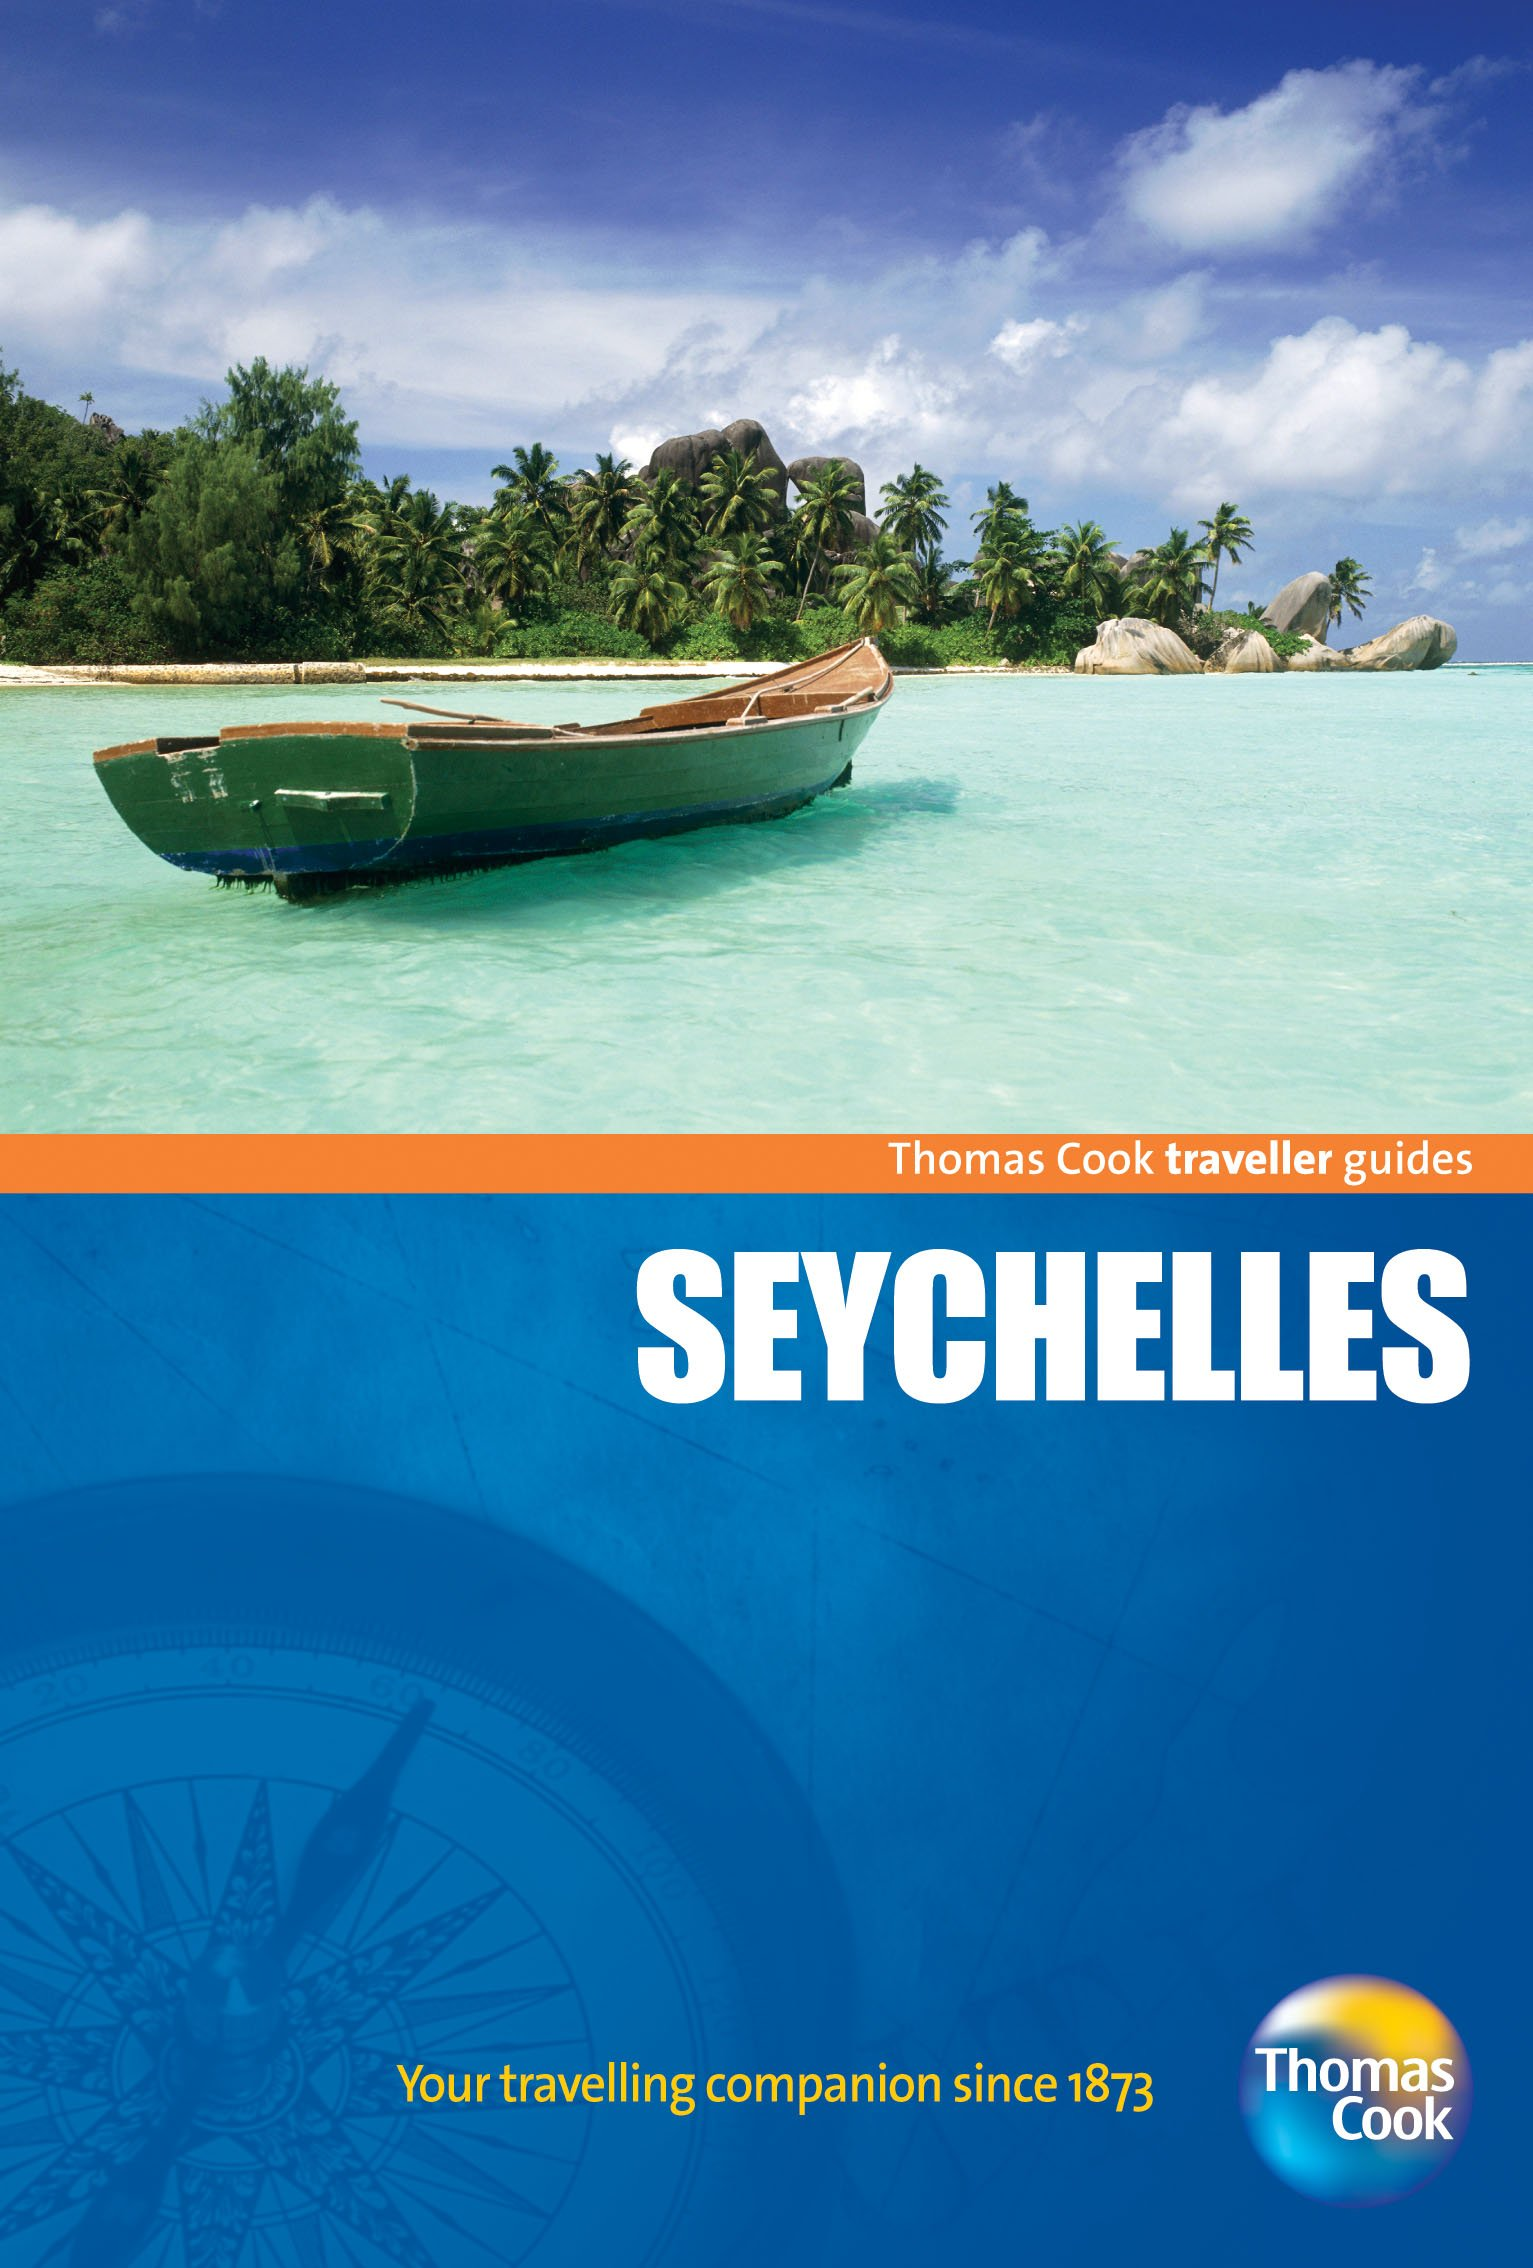 traveller guides seychelles 3rd travellers thomas cook